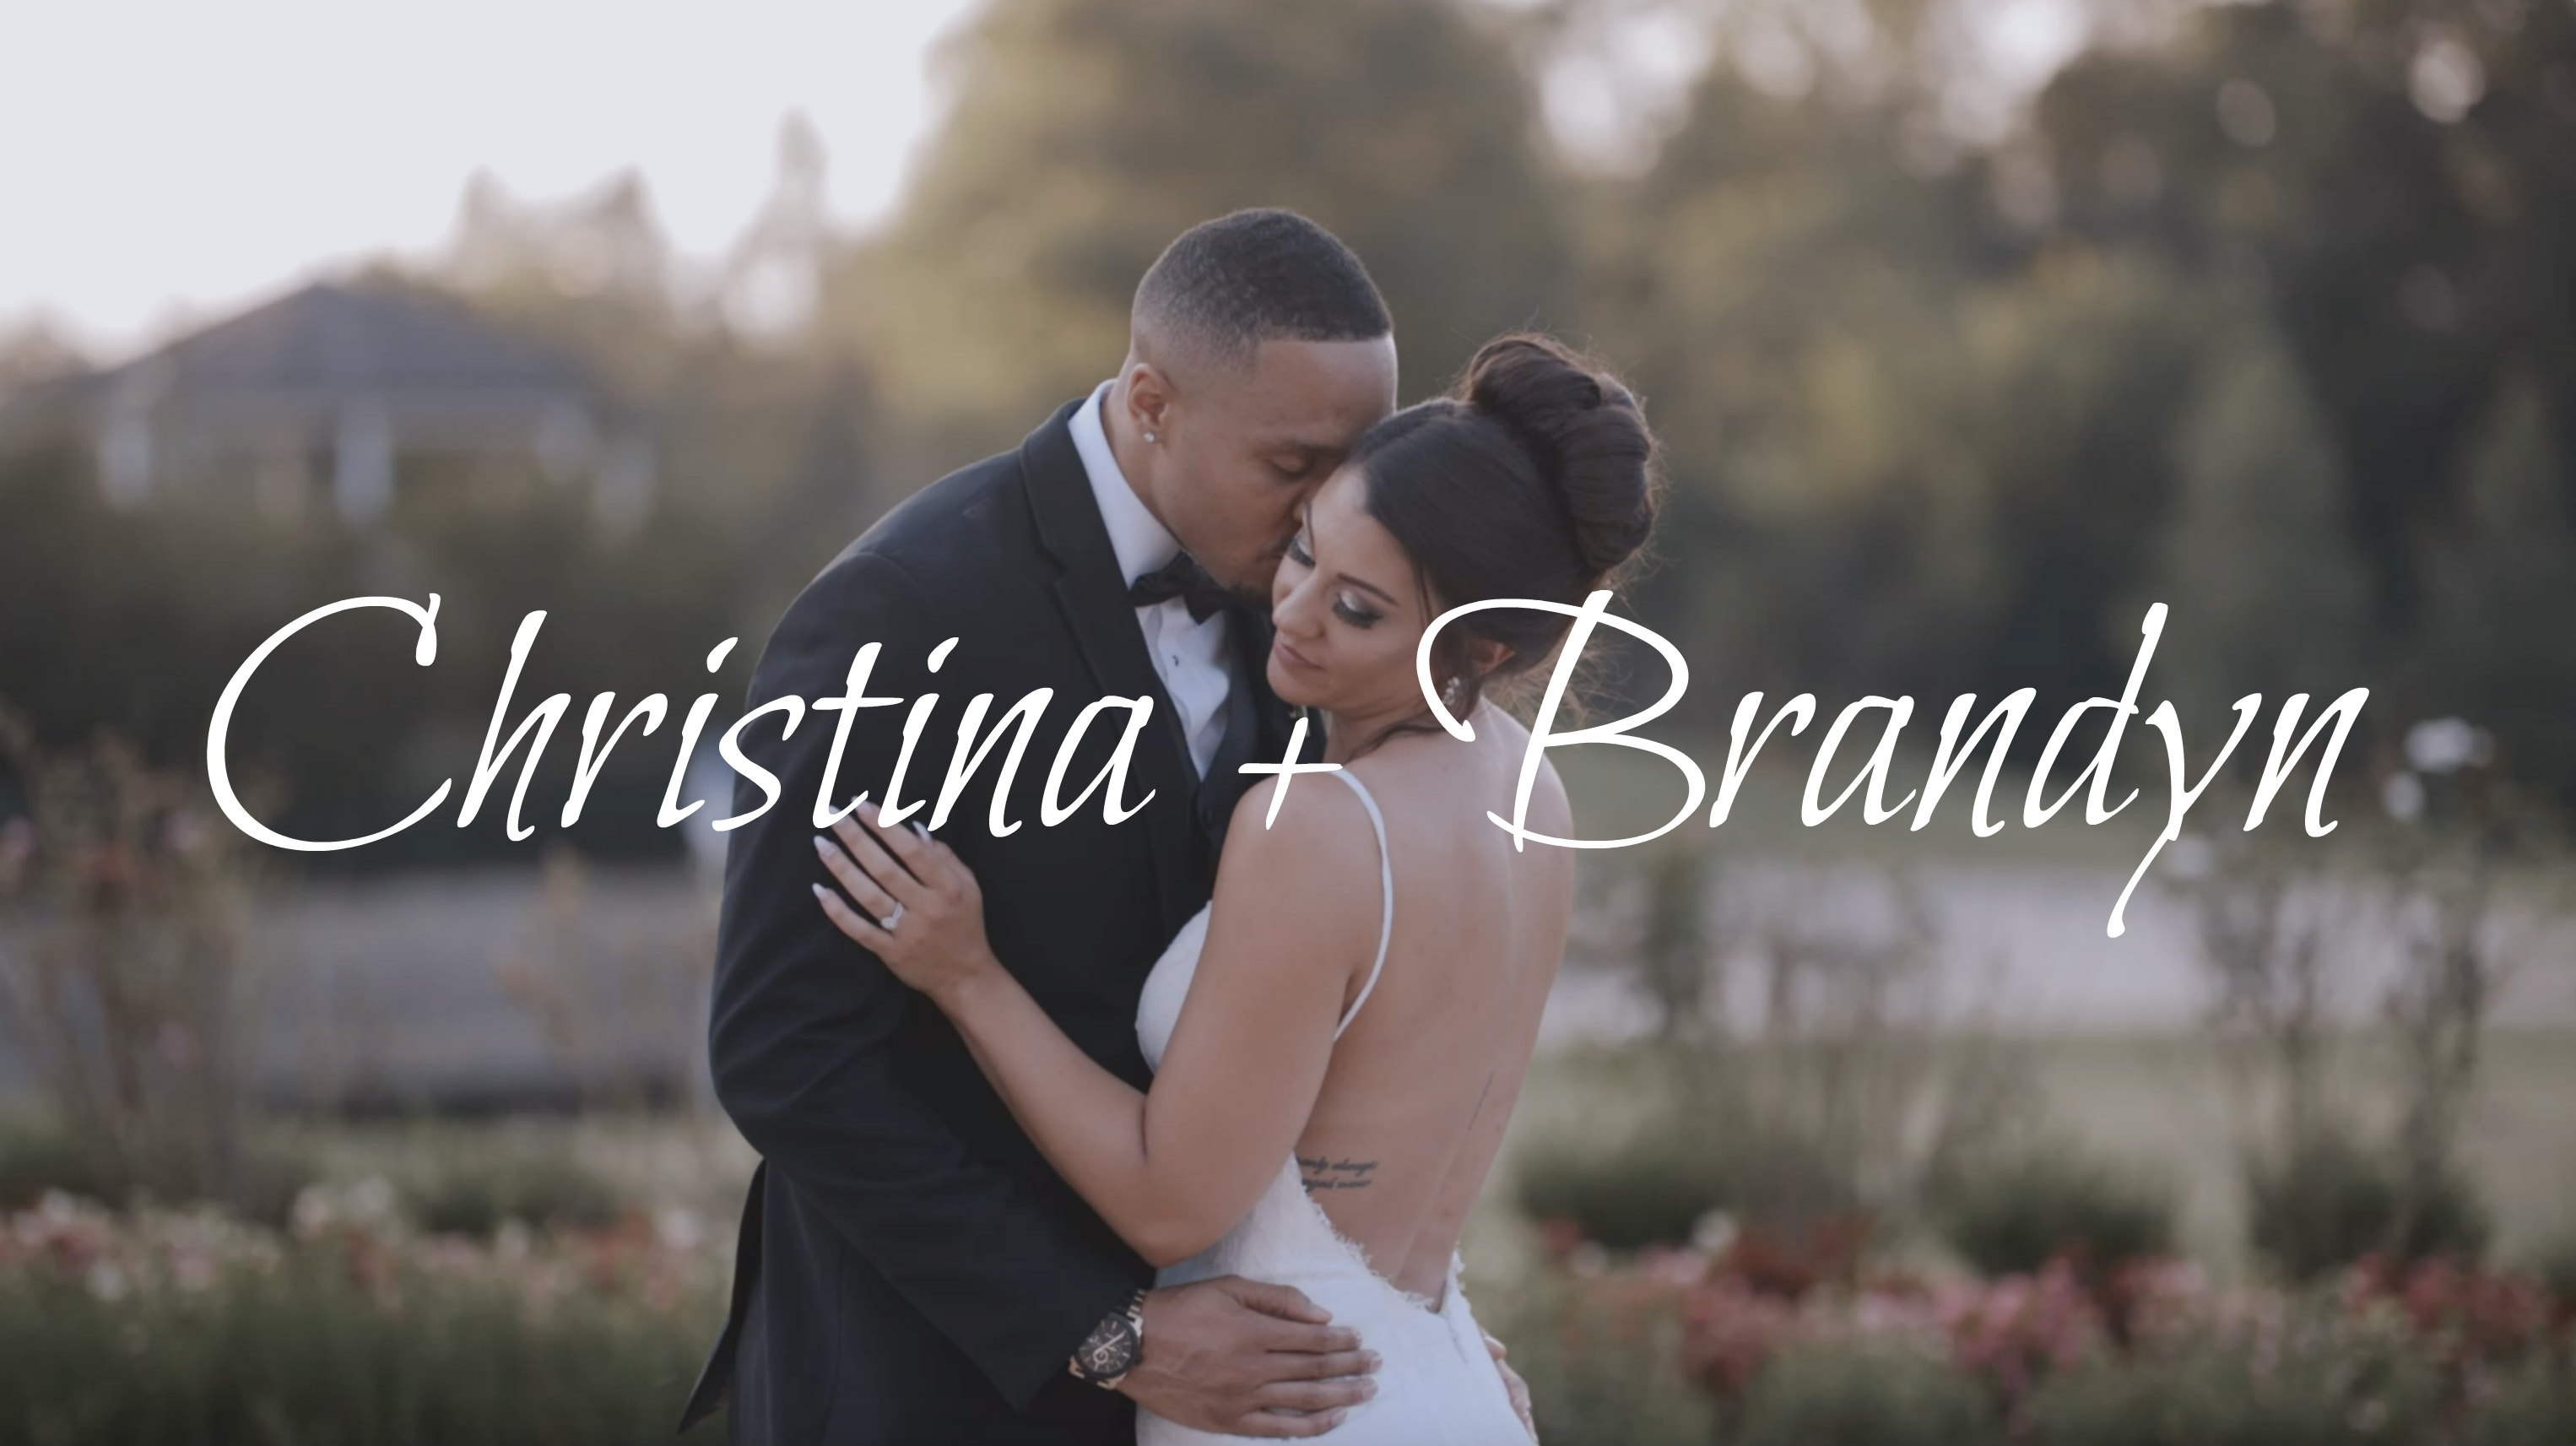 Christina + Brandyn | Charlotte, North Carolina | The Ballantyne Hotel